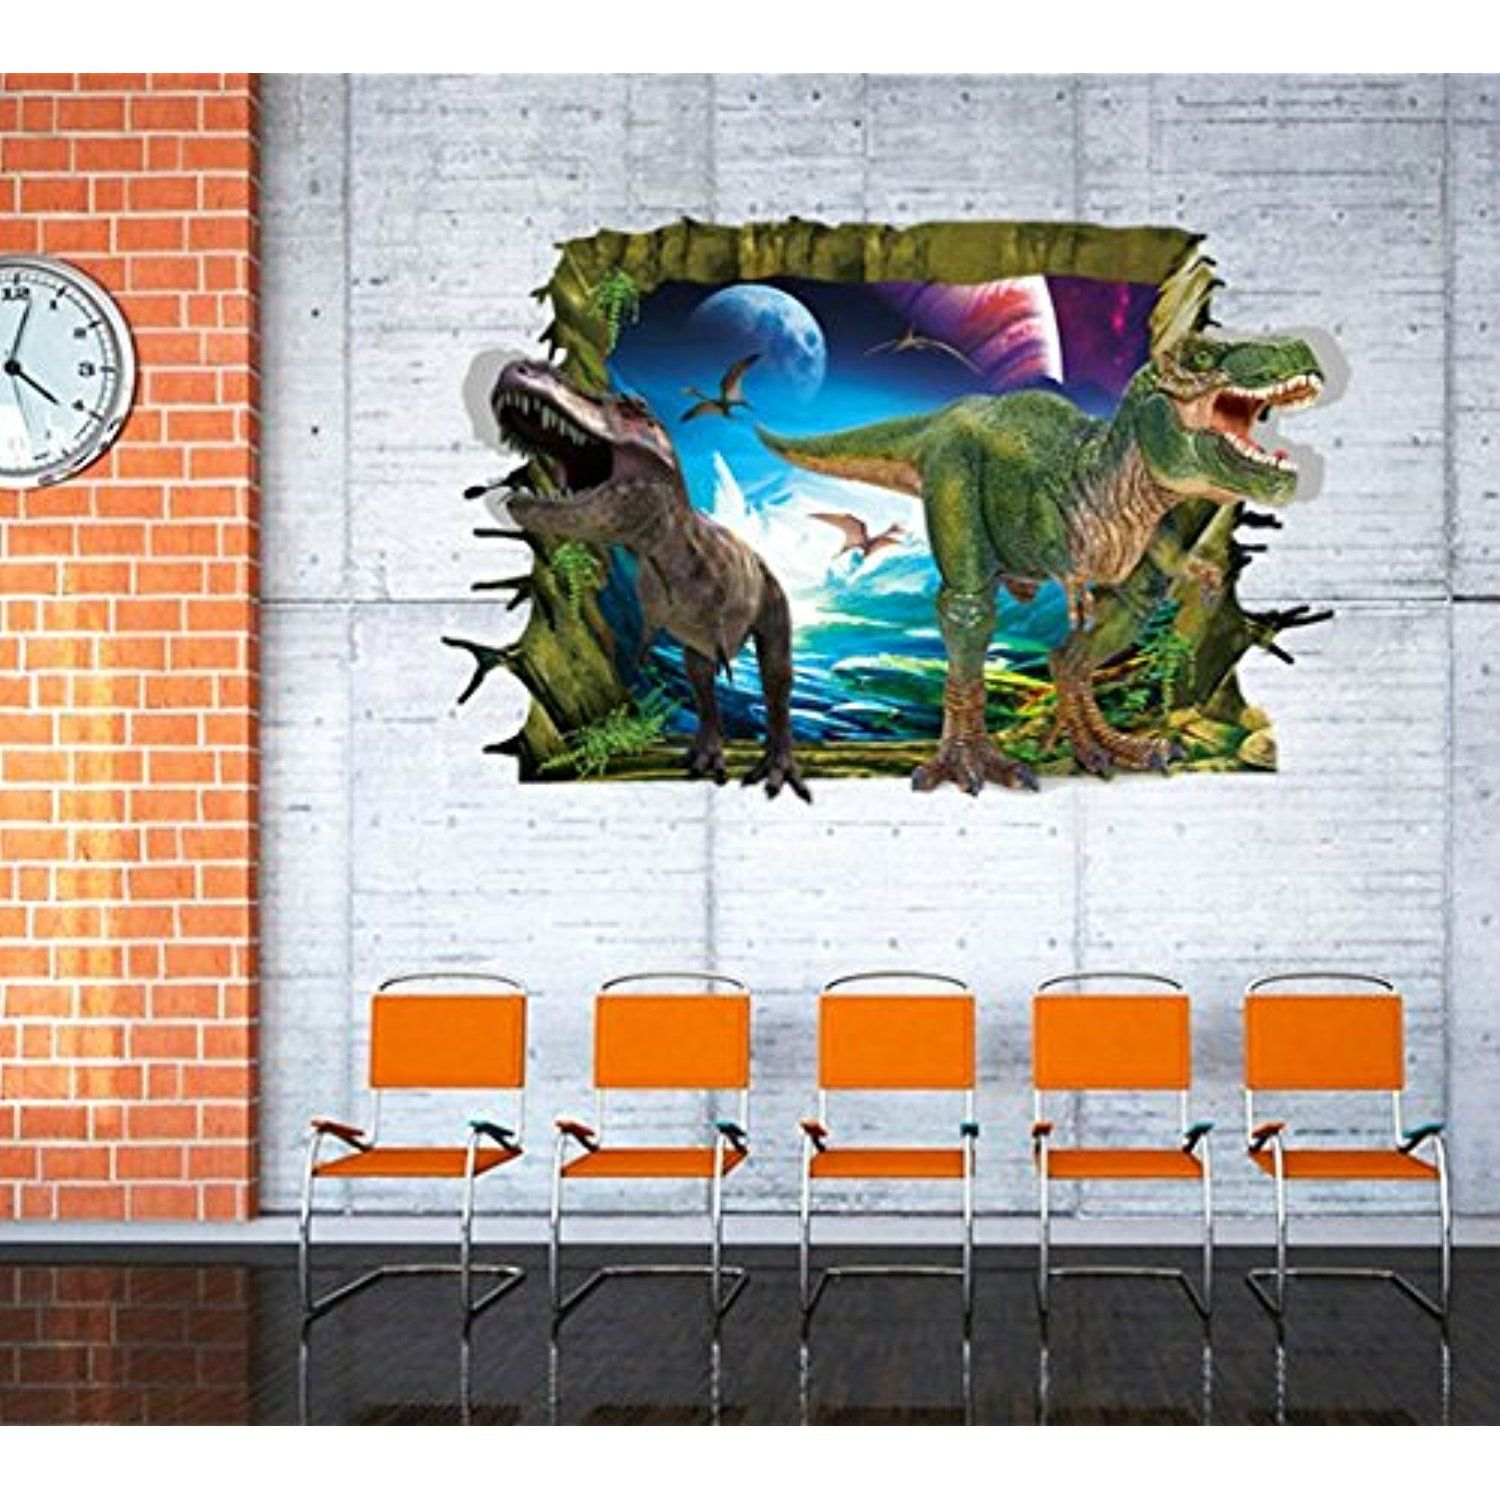 Home Decor Wall Art Dinosaur Stickers Removable Vinyl Wall Decals